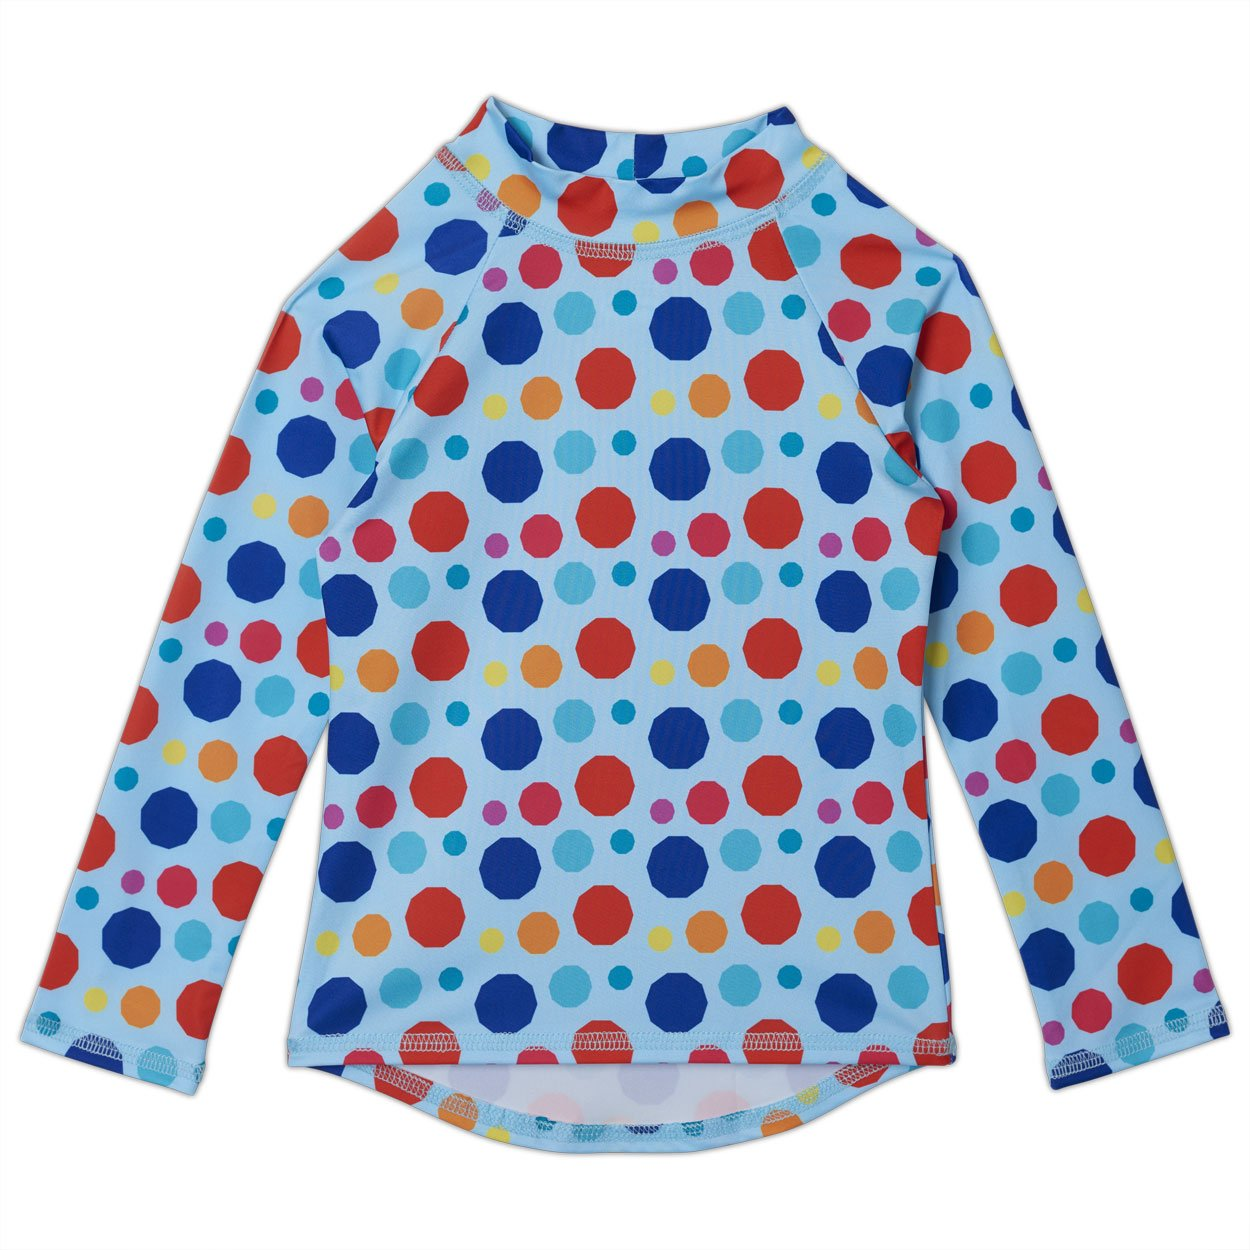 Dots Long Sleeve Rash Guard Top UPF 50+ for Girls